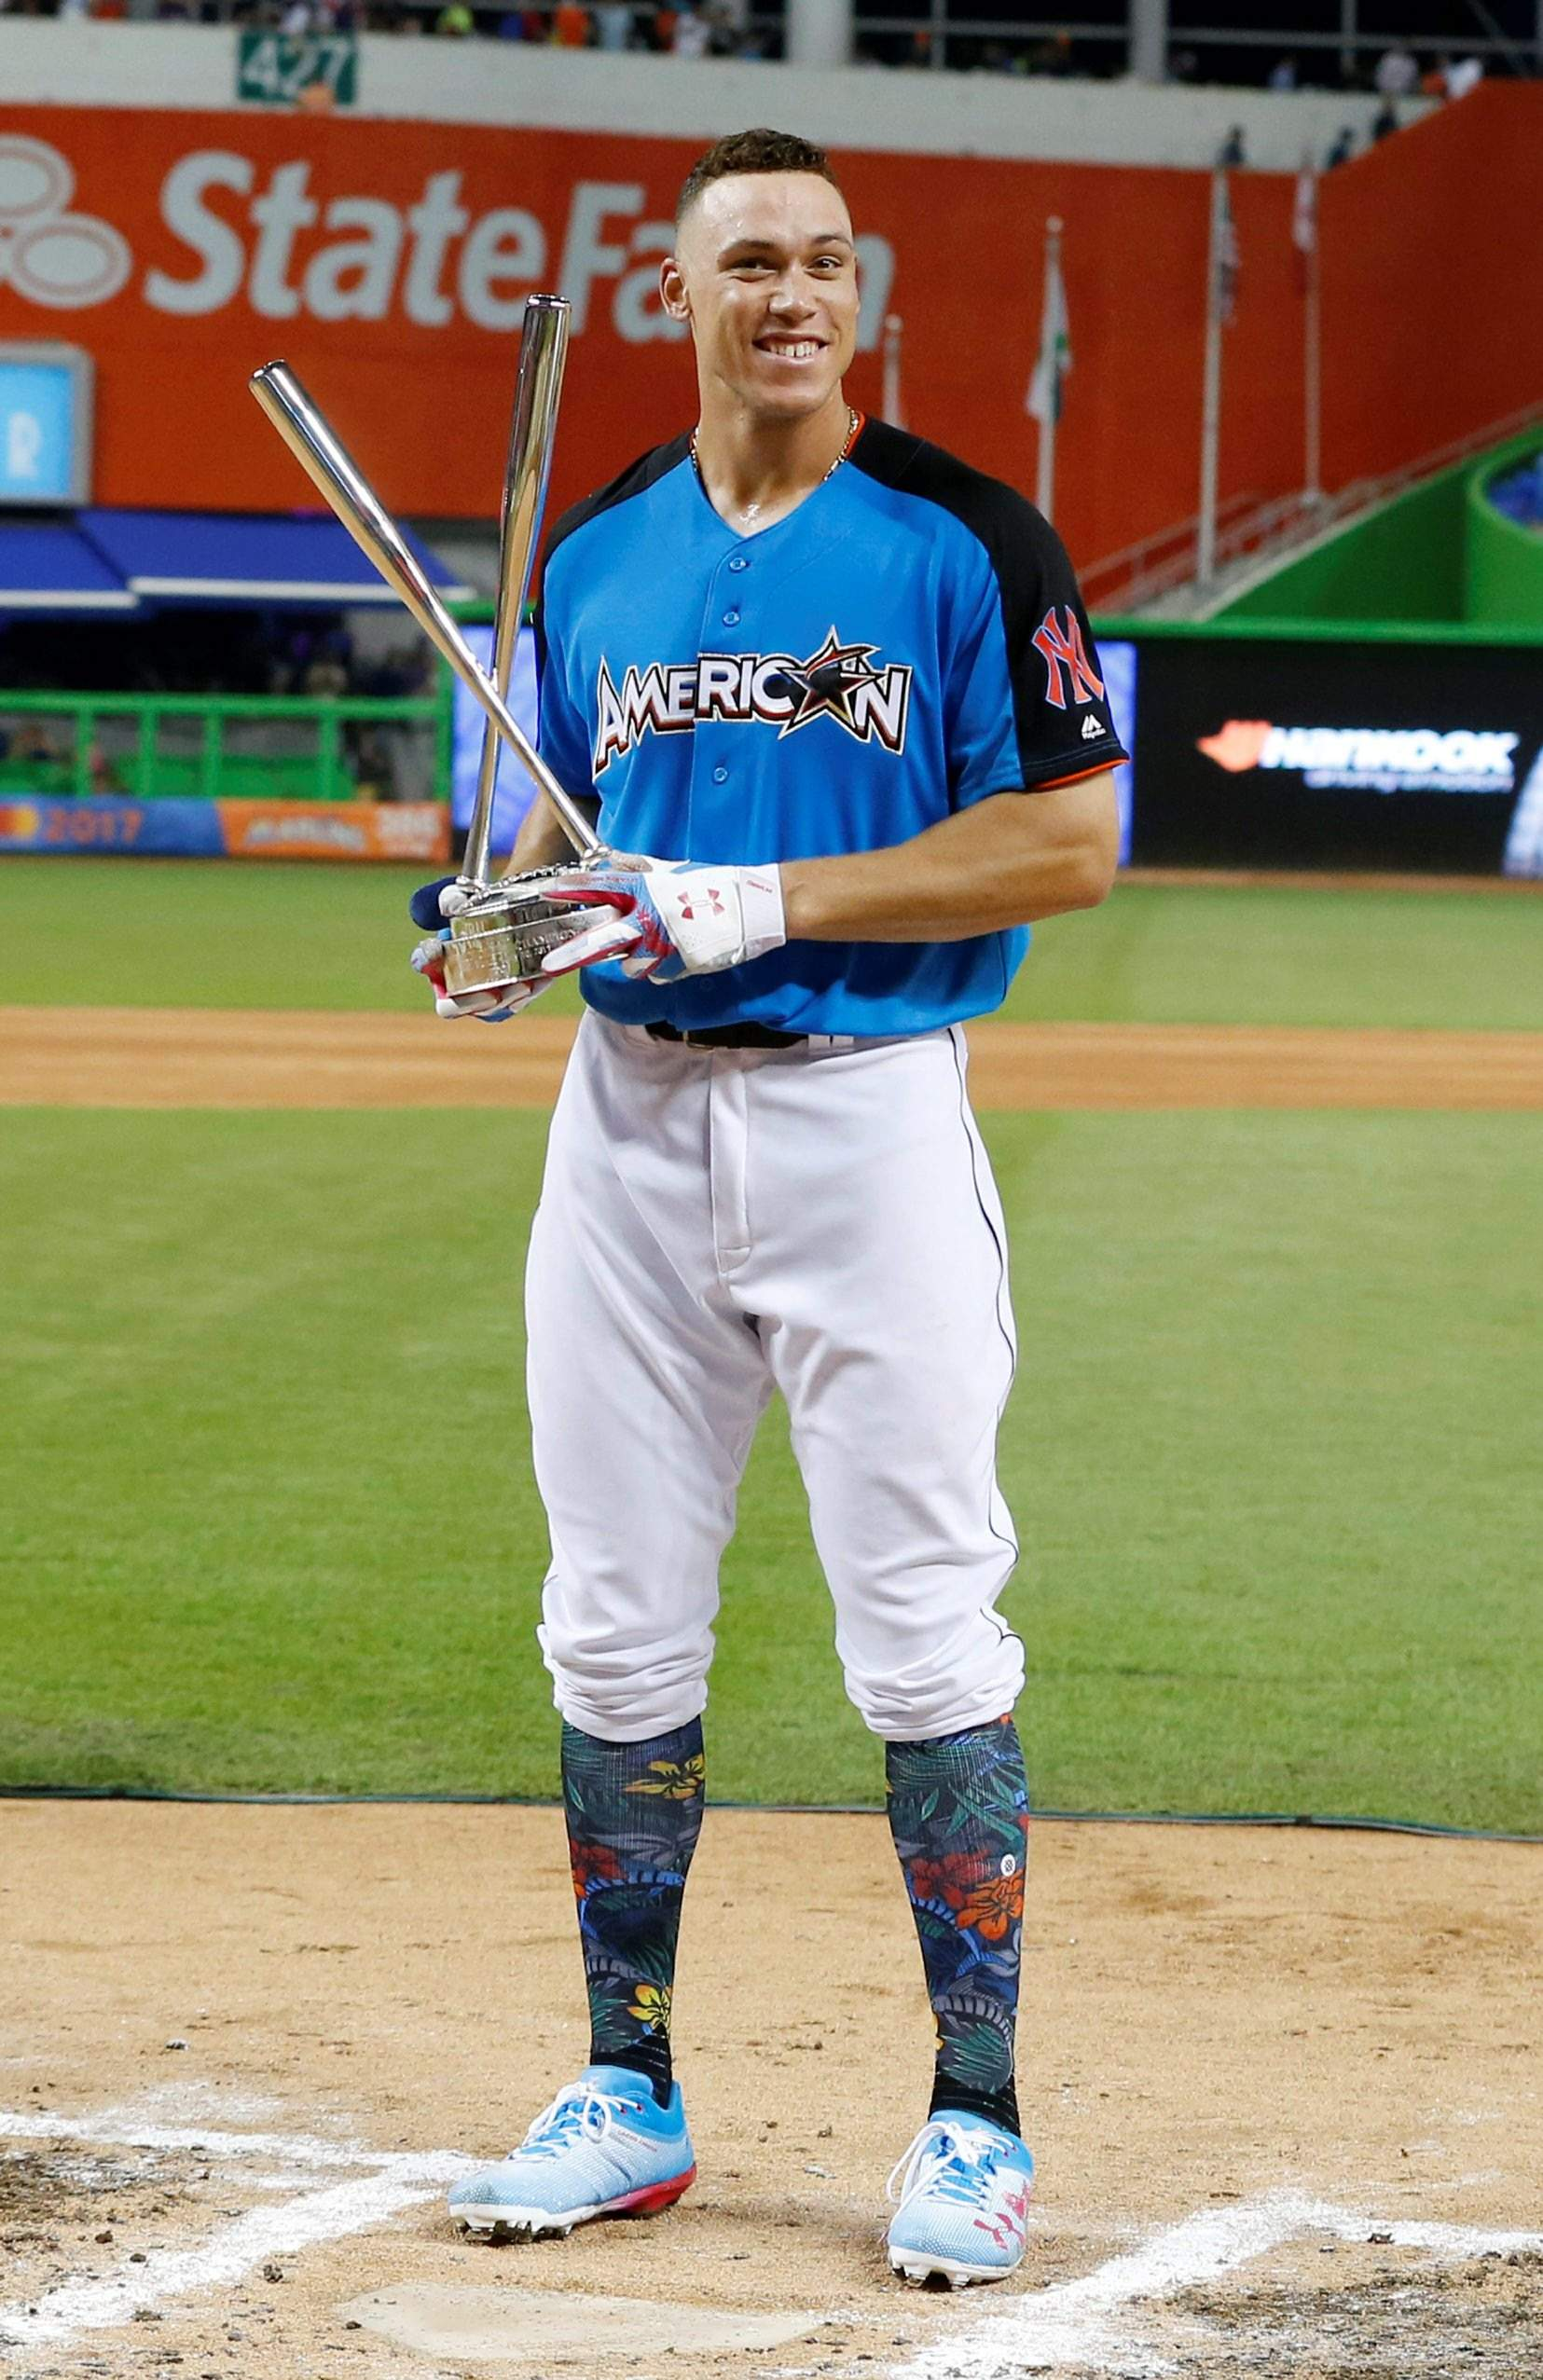 e266df2663e New York Yankees  Aaron Judge shows the trophy after winning the MLB  All-Star Home Run Derby Monday in Miami.